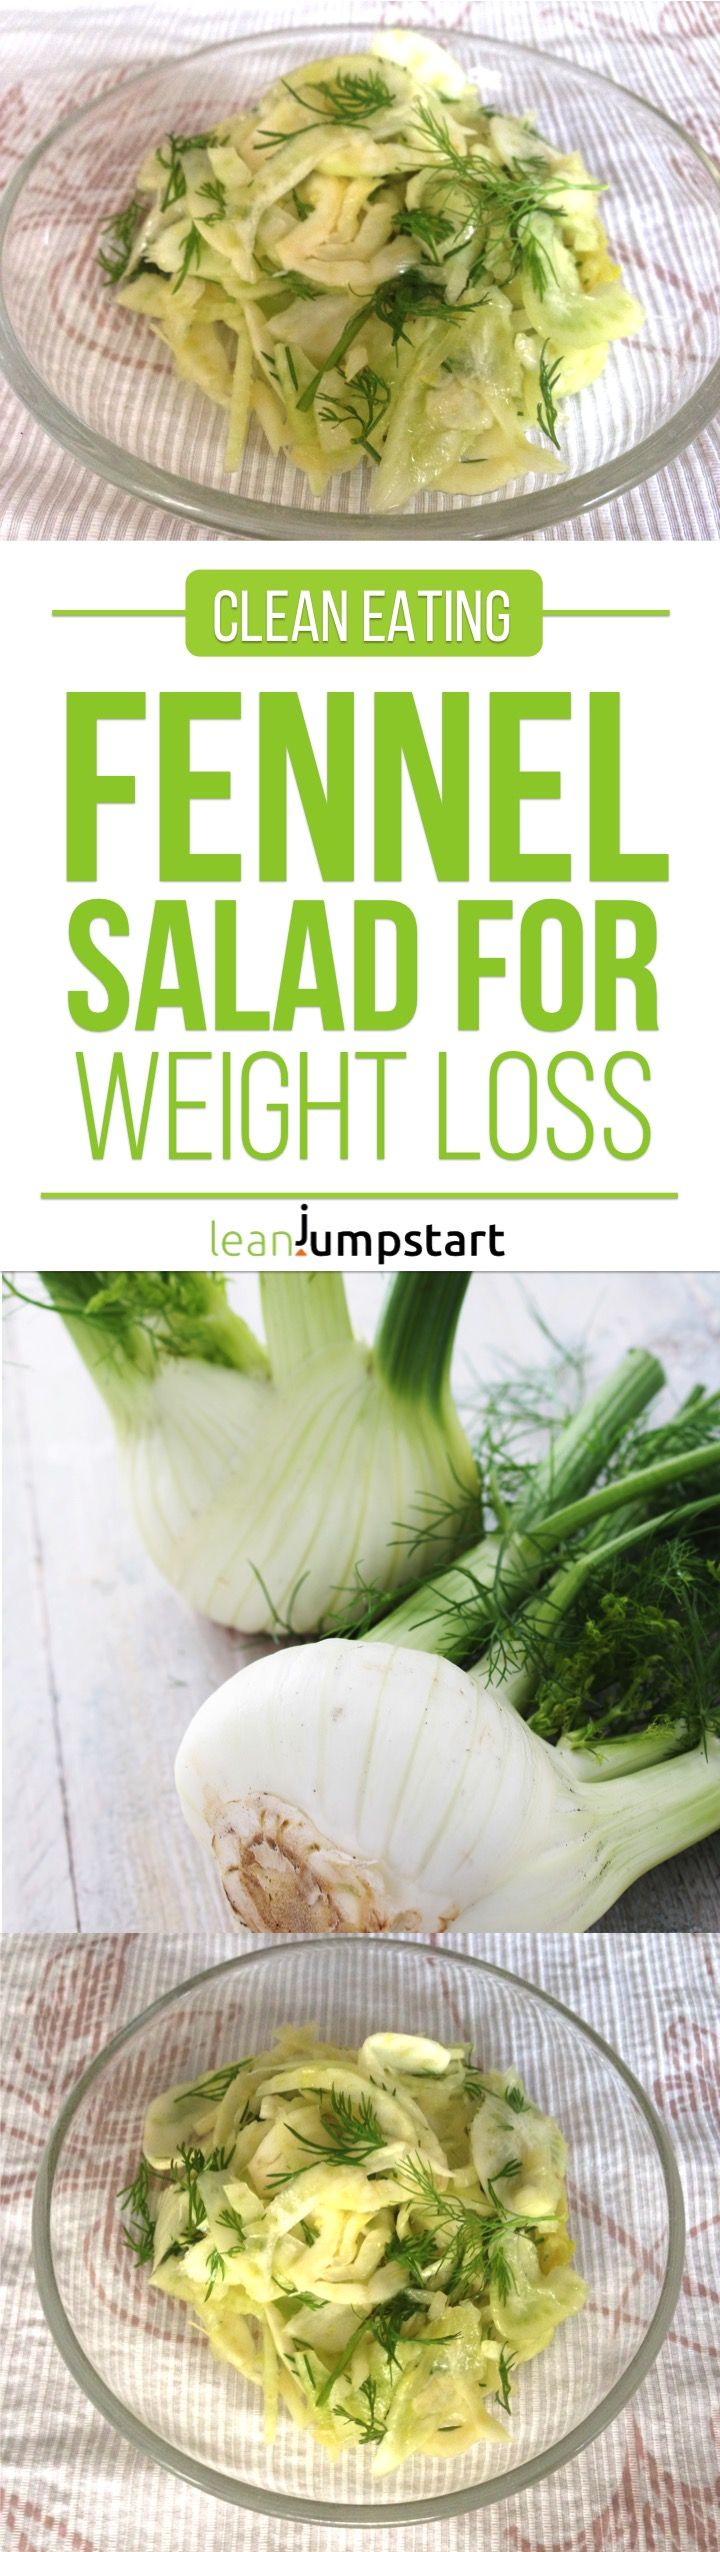 Fennel Salad Recipe: Quick and Easy + 4 Weight Loss Effects of Fennel